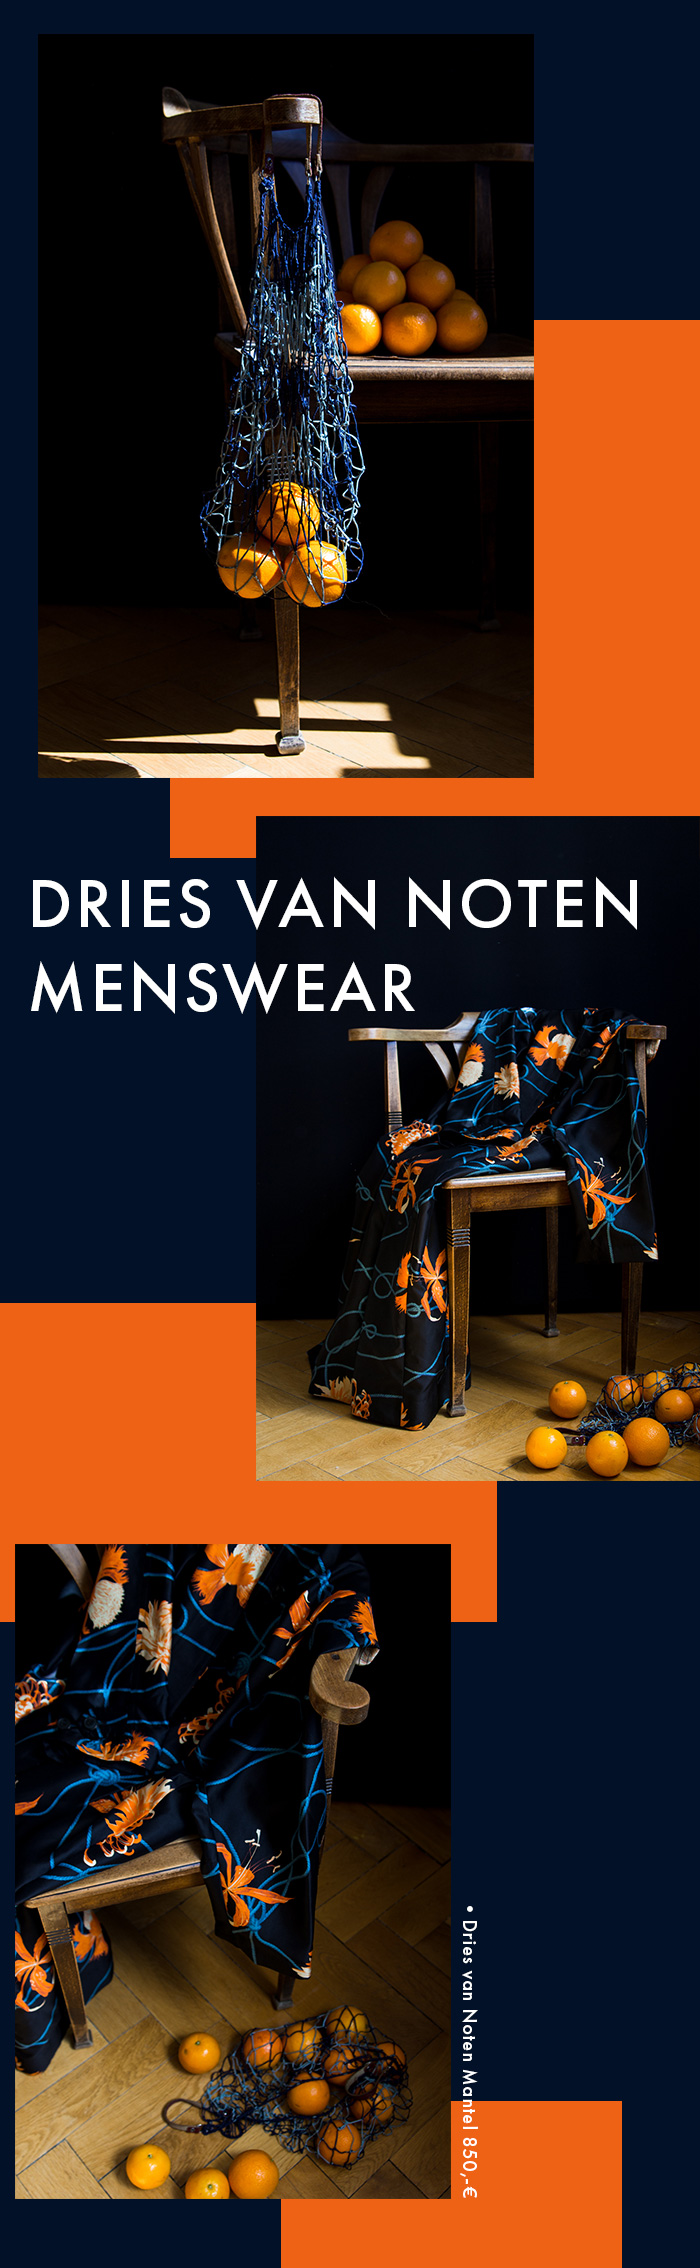 Dries van Noten - Menswear - Second Season-01